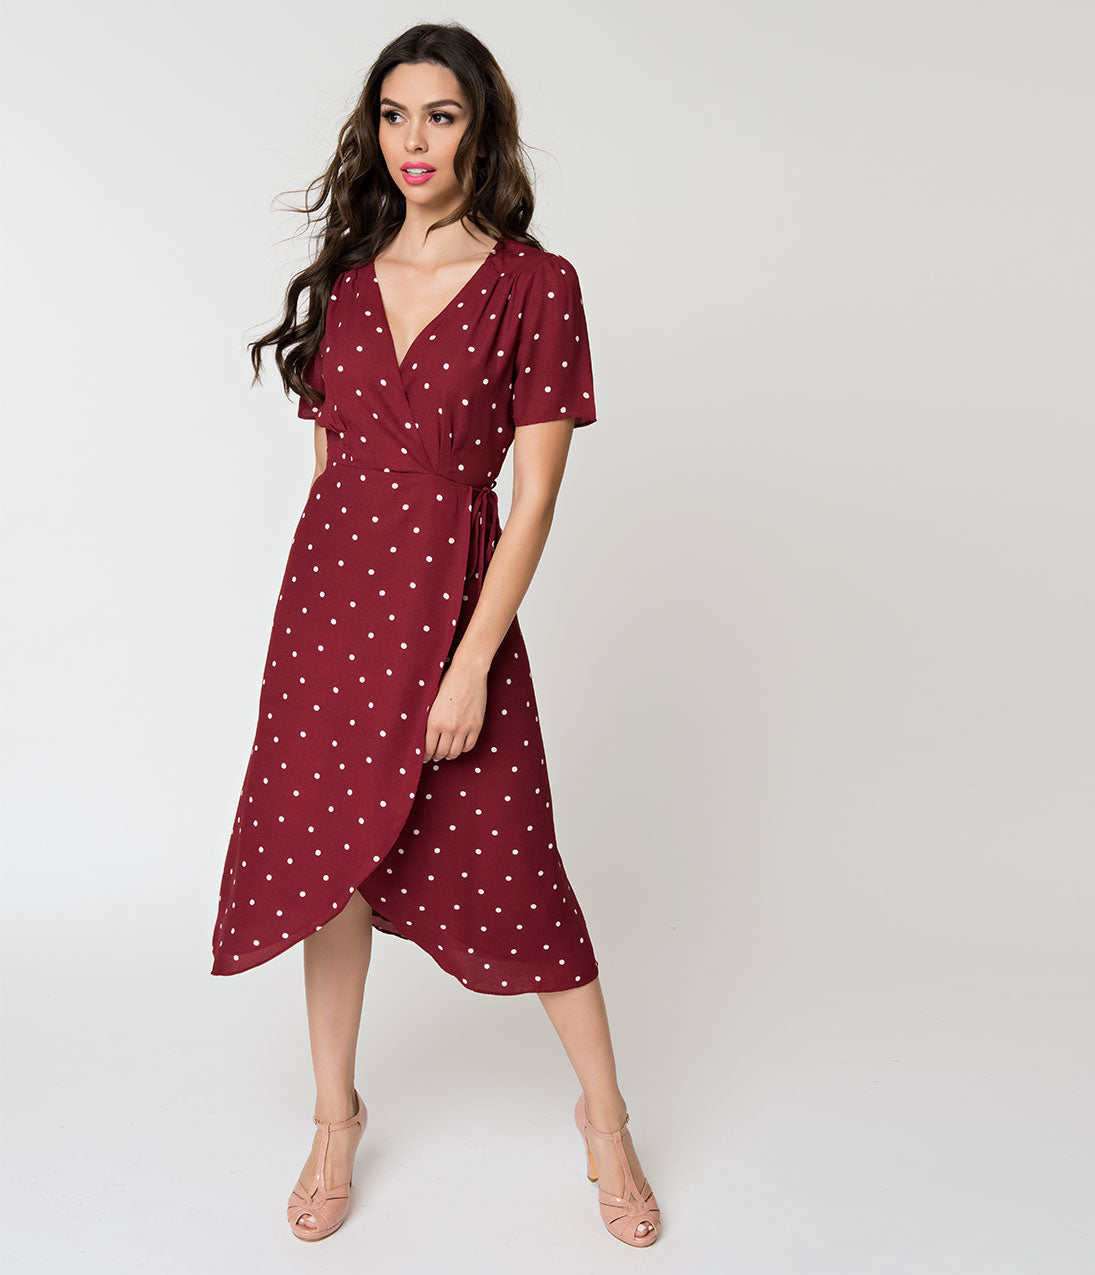 Polka Dot Dresses: 20s, 30s, 40s, 50s, 60s Burgundy  White Polka Dot High Low Wrap Dress $58.00 AT vintagedancer.com